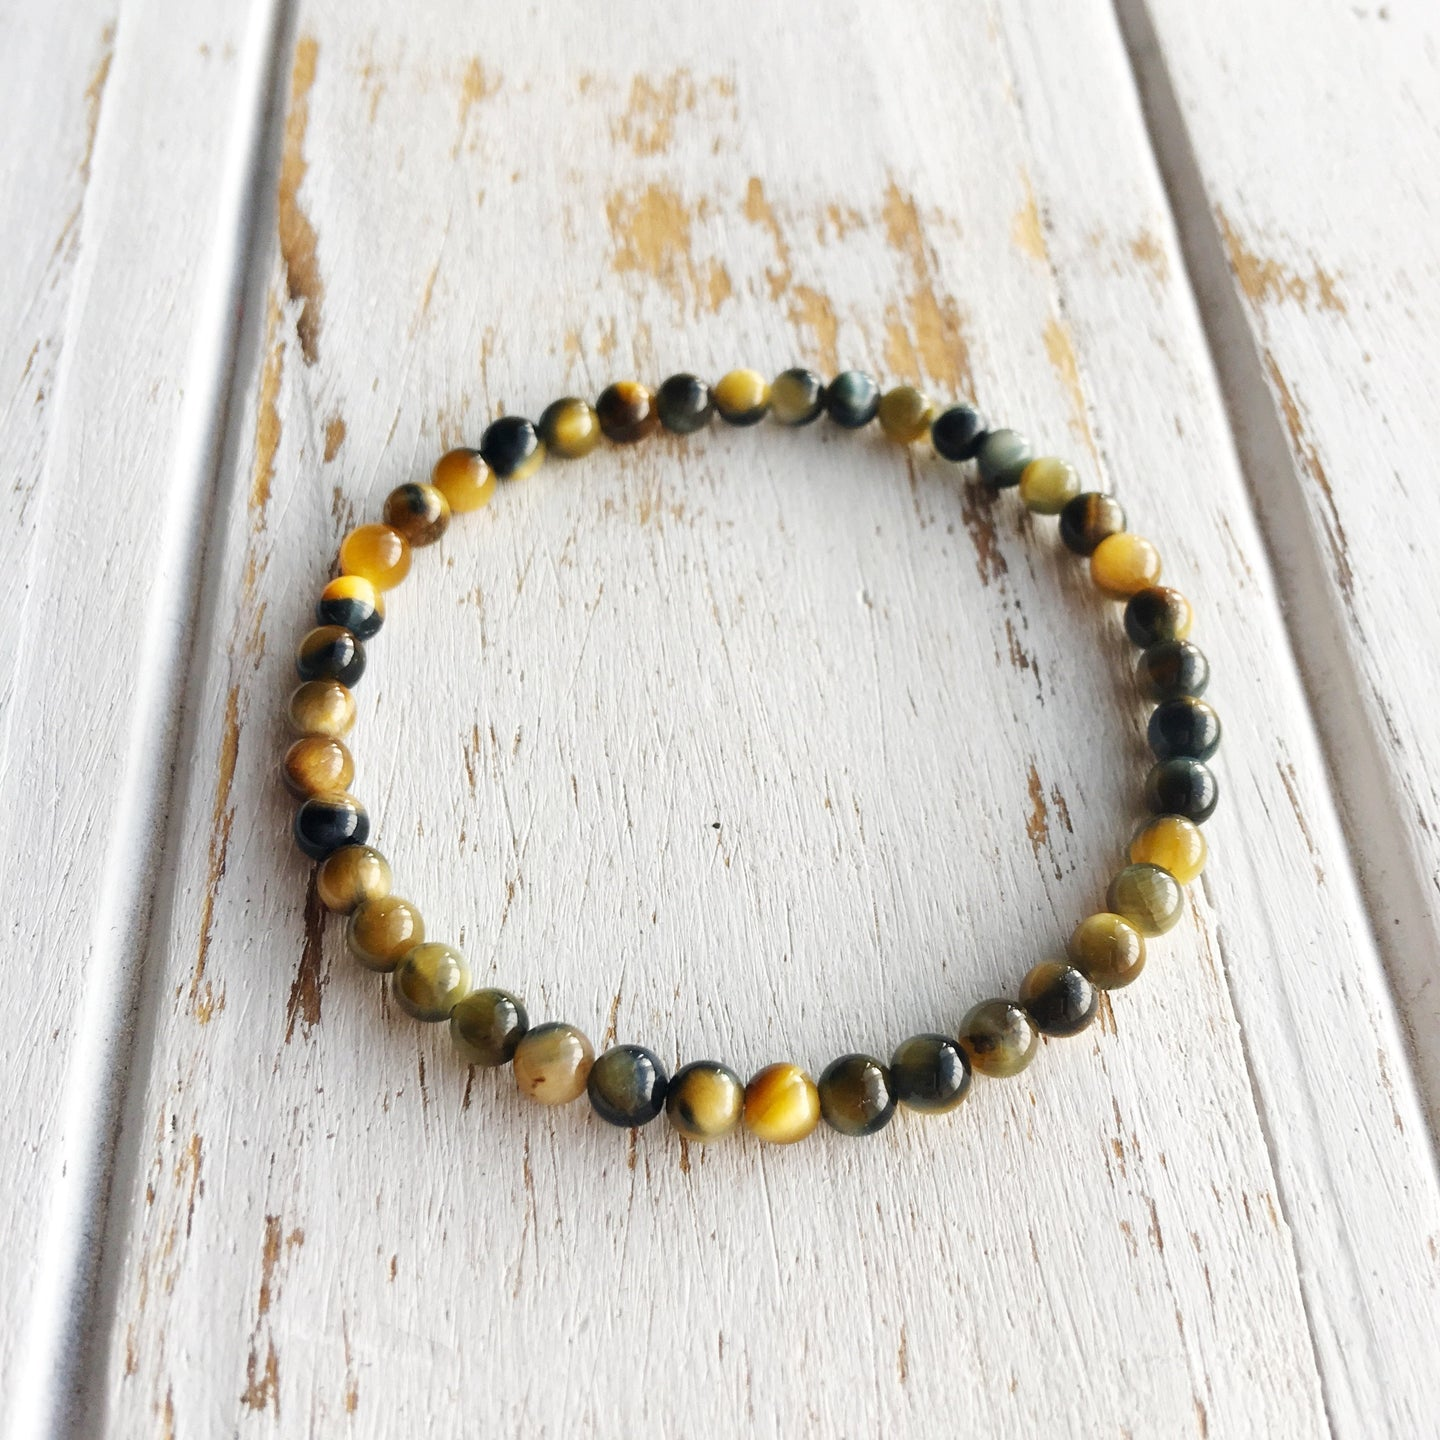 4mm Multi-Colored Tiger Eye Bracelet